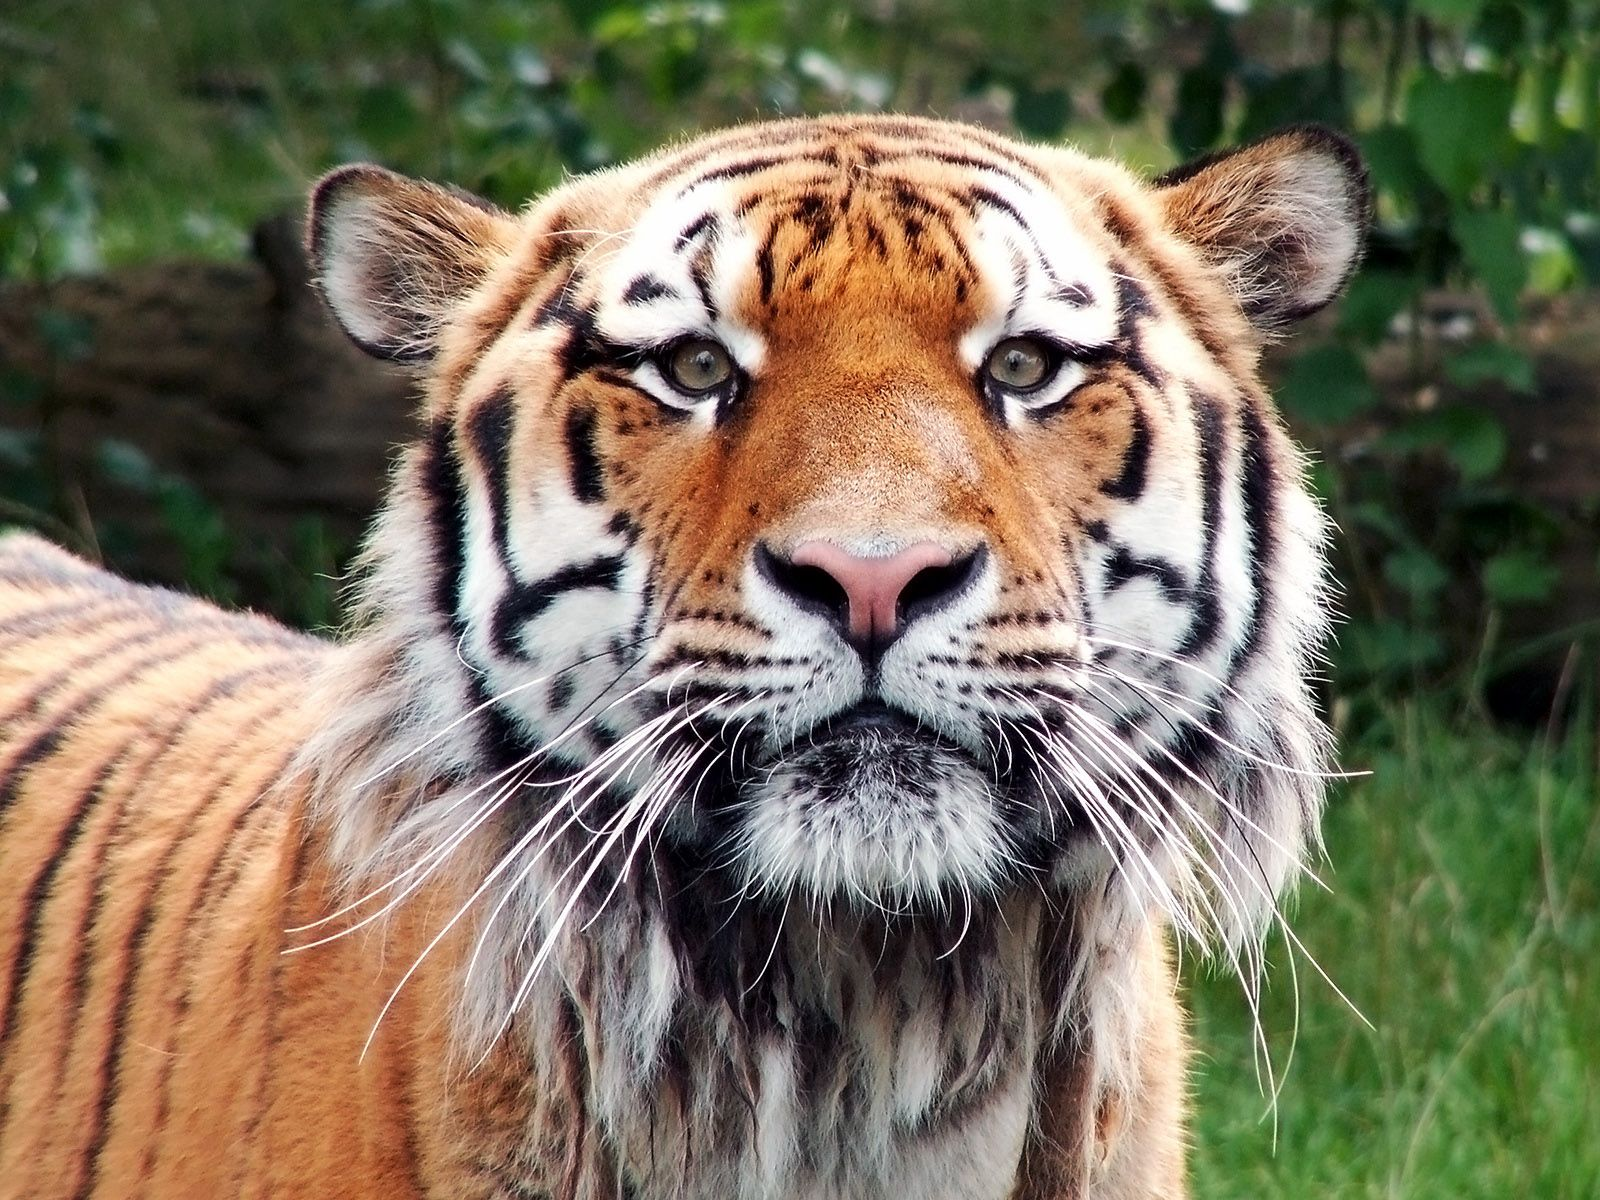 144667 download wallpaper Animals, Tiger, Muzzle, Satisfied, Content, Sight, Opinion, Big Cat screensavers and pictures for free